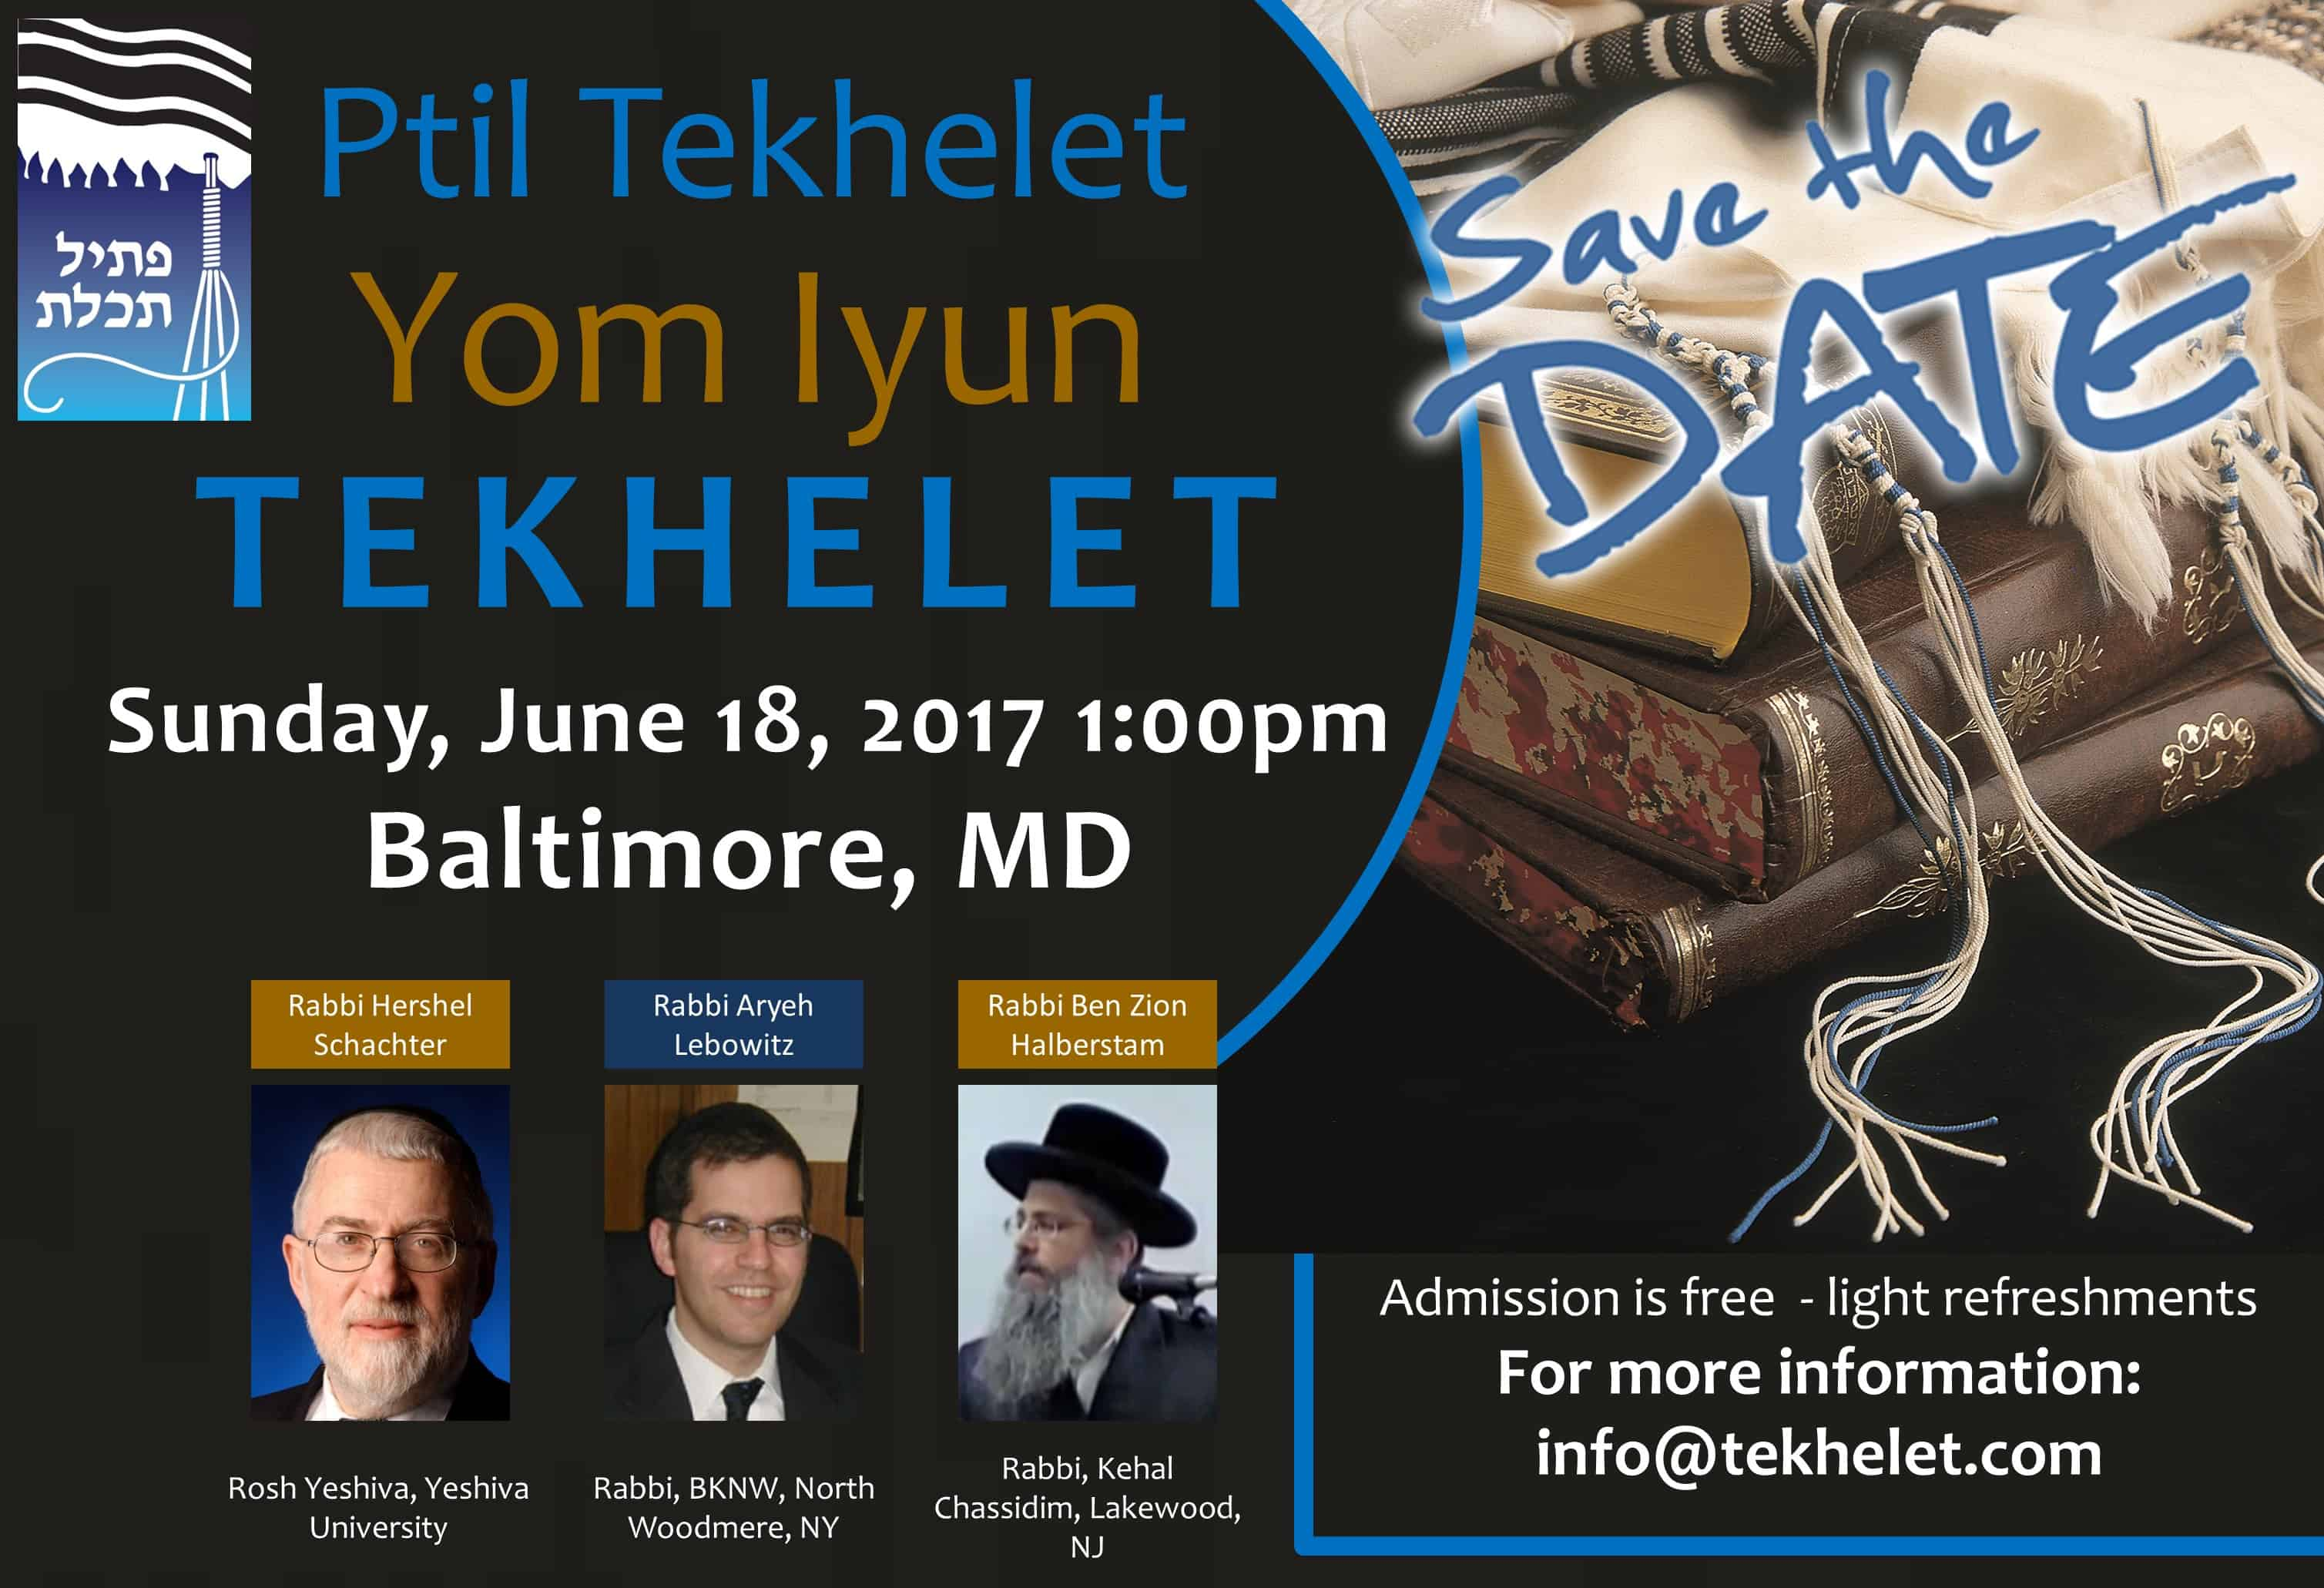 Recap of the Tekhelet Yom Iyun